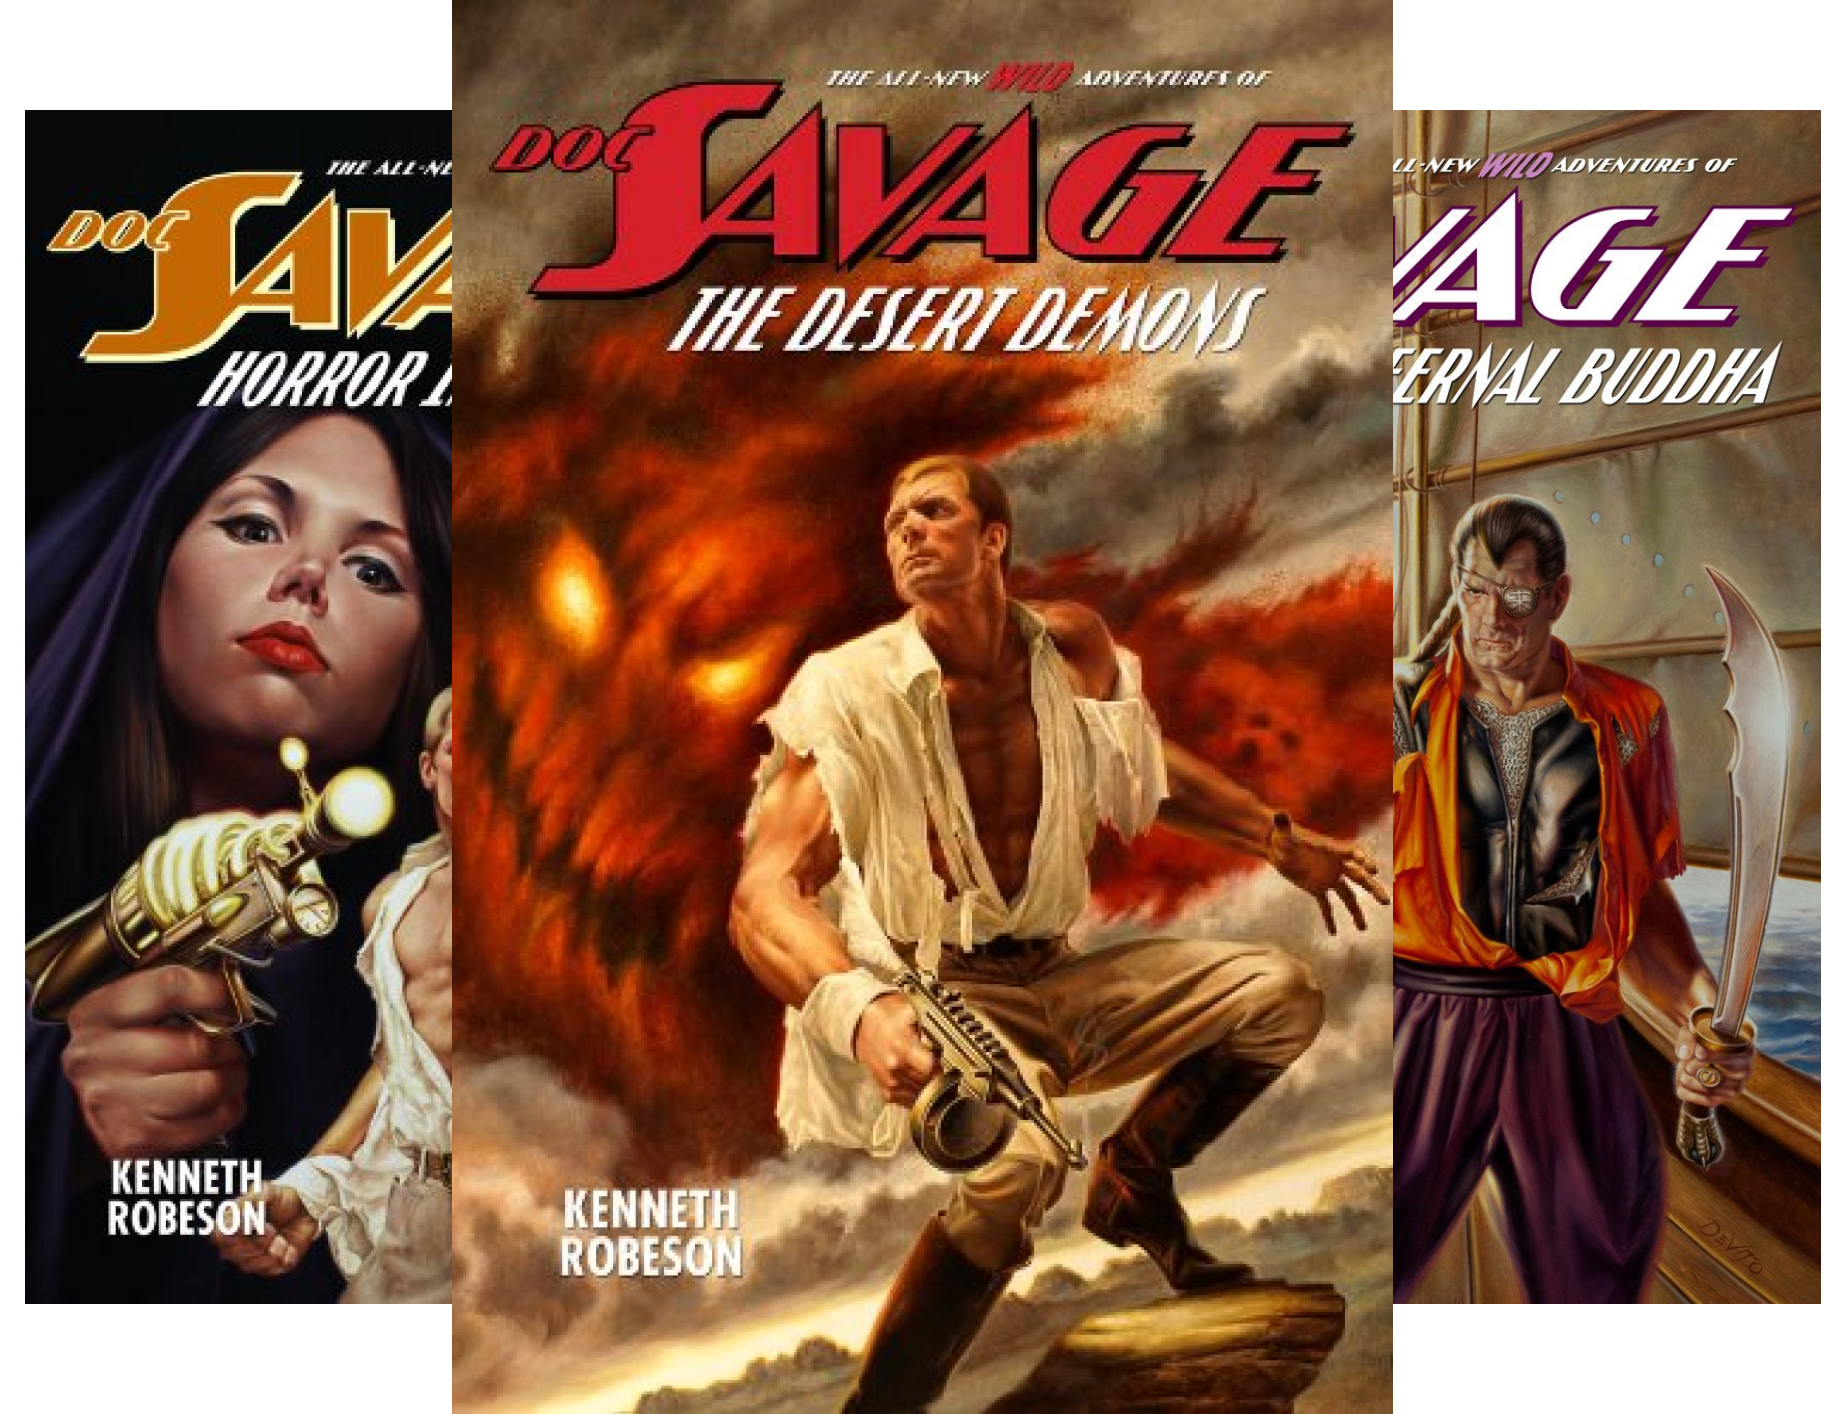 The Wild Adventures of Doc Savage